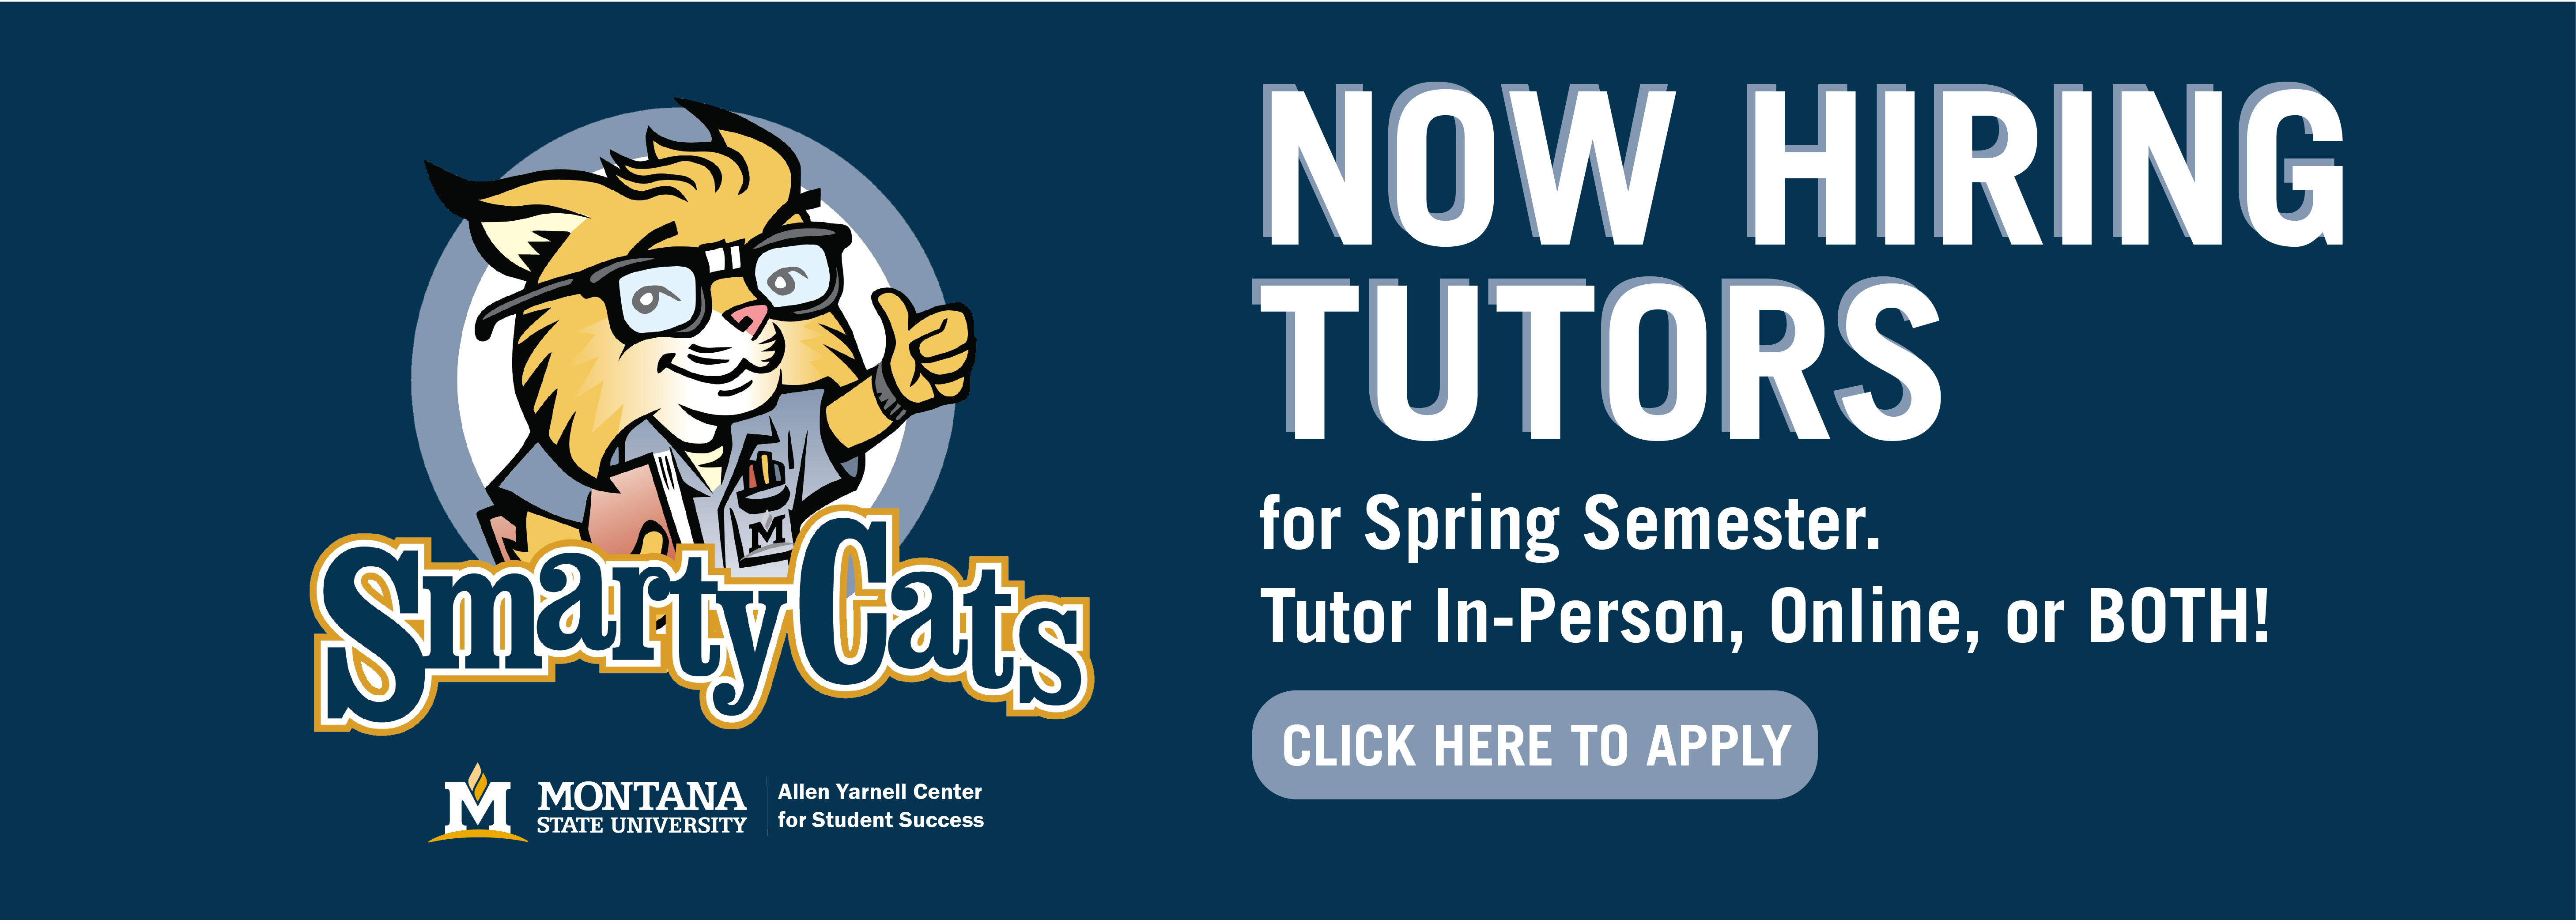 Now Hiring Tutors for Spring Semester. Tutor in person, online, or both!